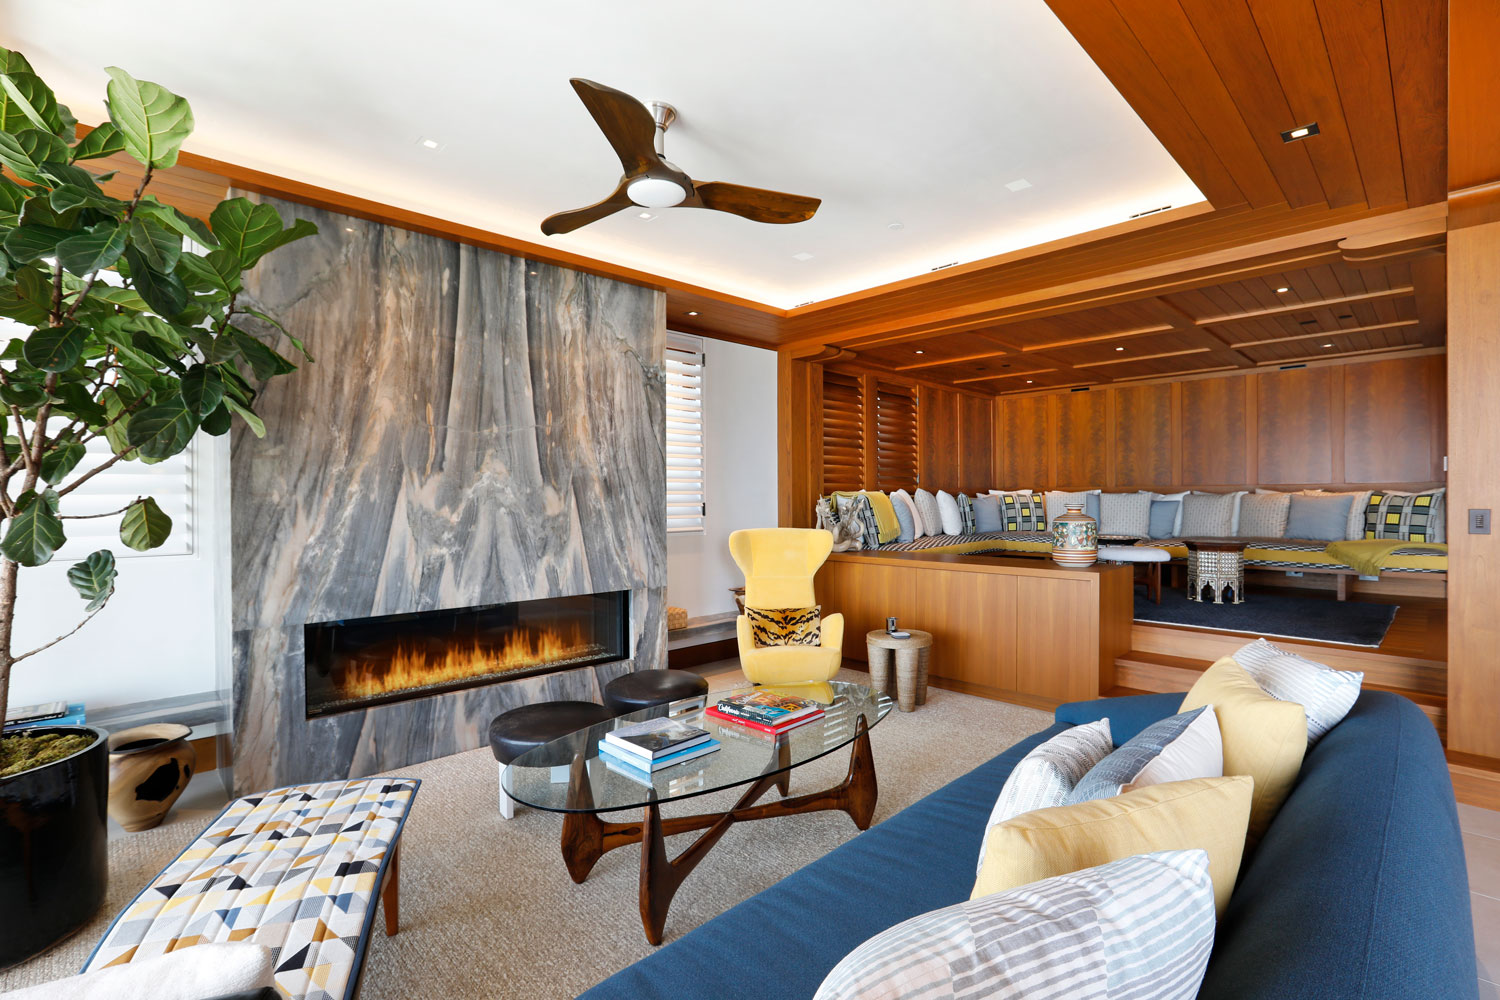 6-Contemporary-Living-Room-Marble-Fireplace-Wood-Paneling-Corbin-Reeves.jpg